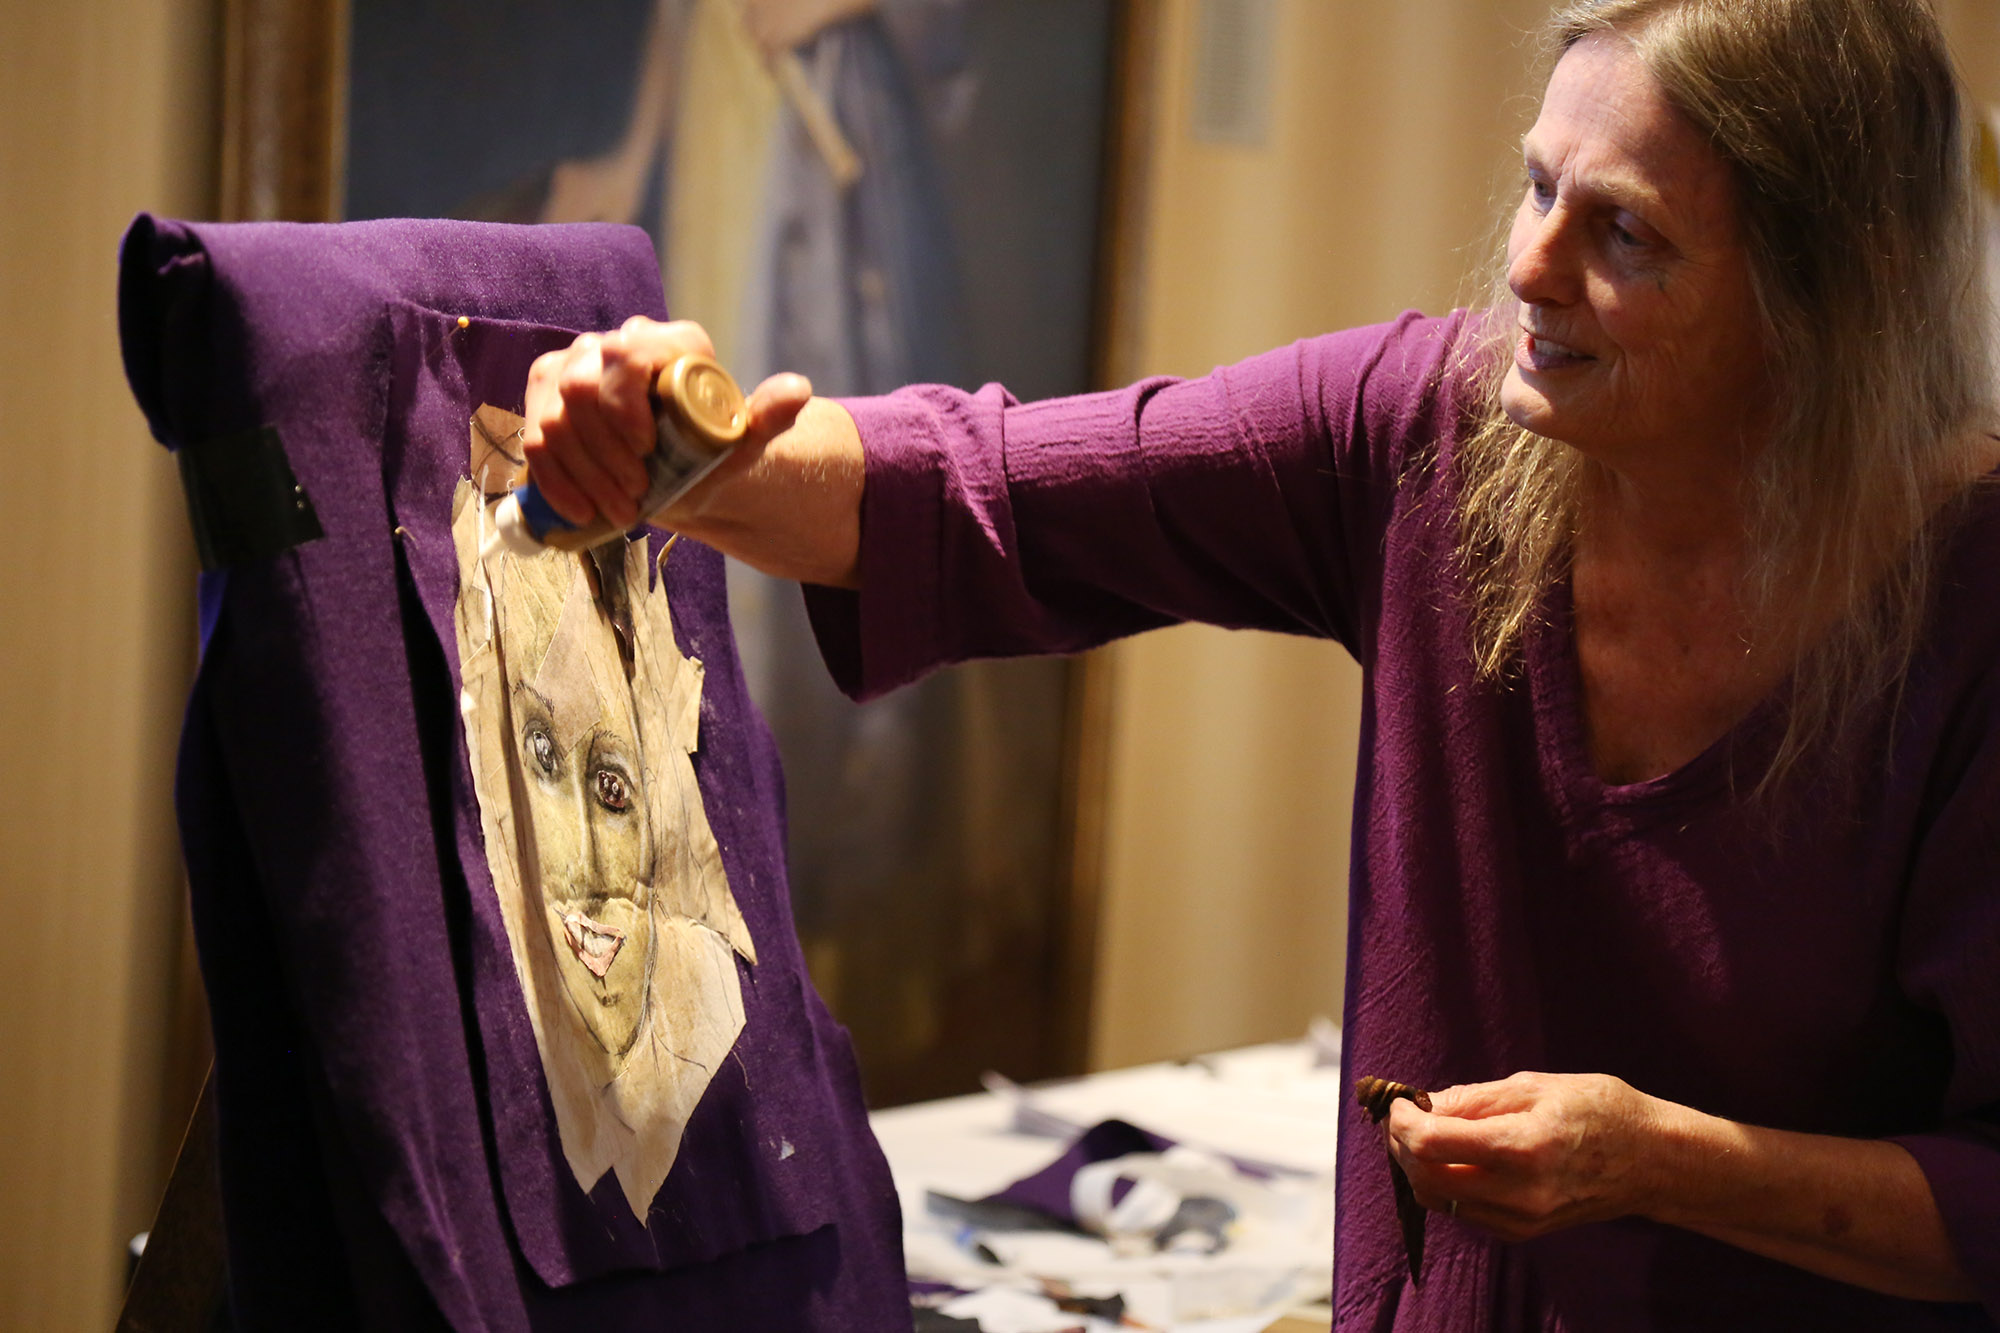 Fabric artist Penny Sisto tells her life story why demonstrating her craft to educators in the Anne Frank Bearing Witness program.